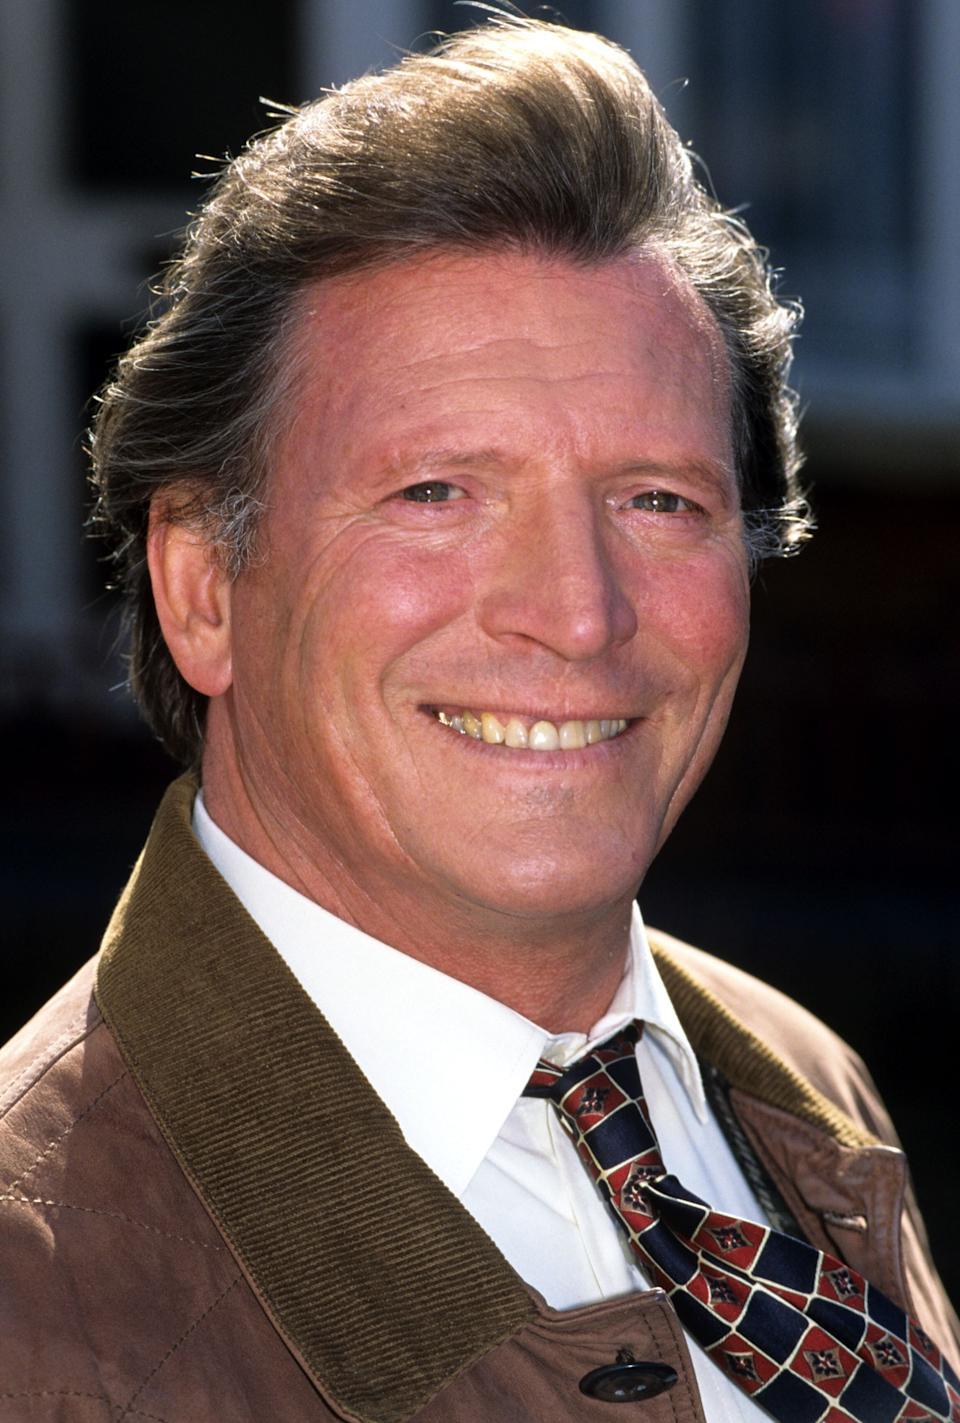 Johnny Briggs was remembered by his former Coronation Street co-stars (Photo: Shutterstock)